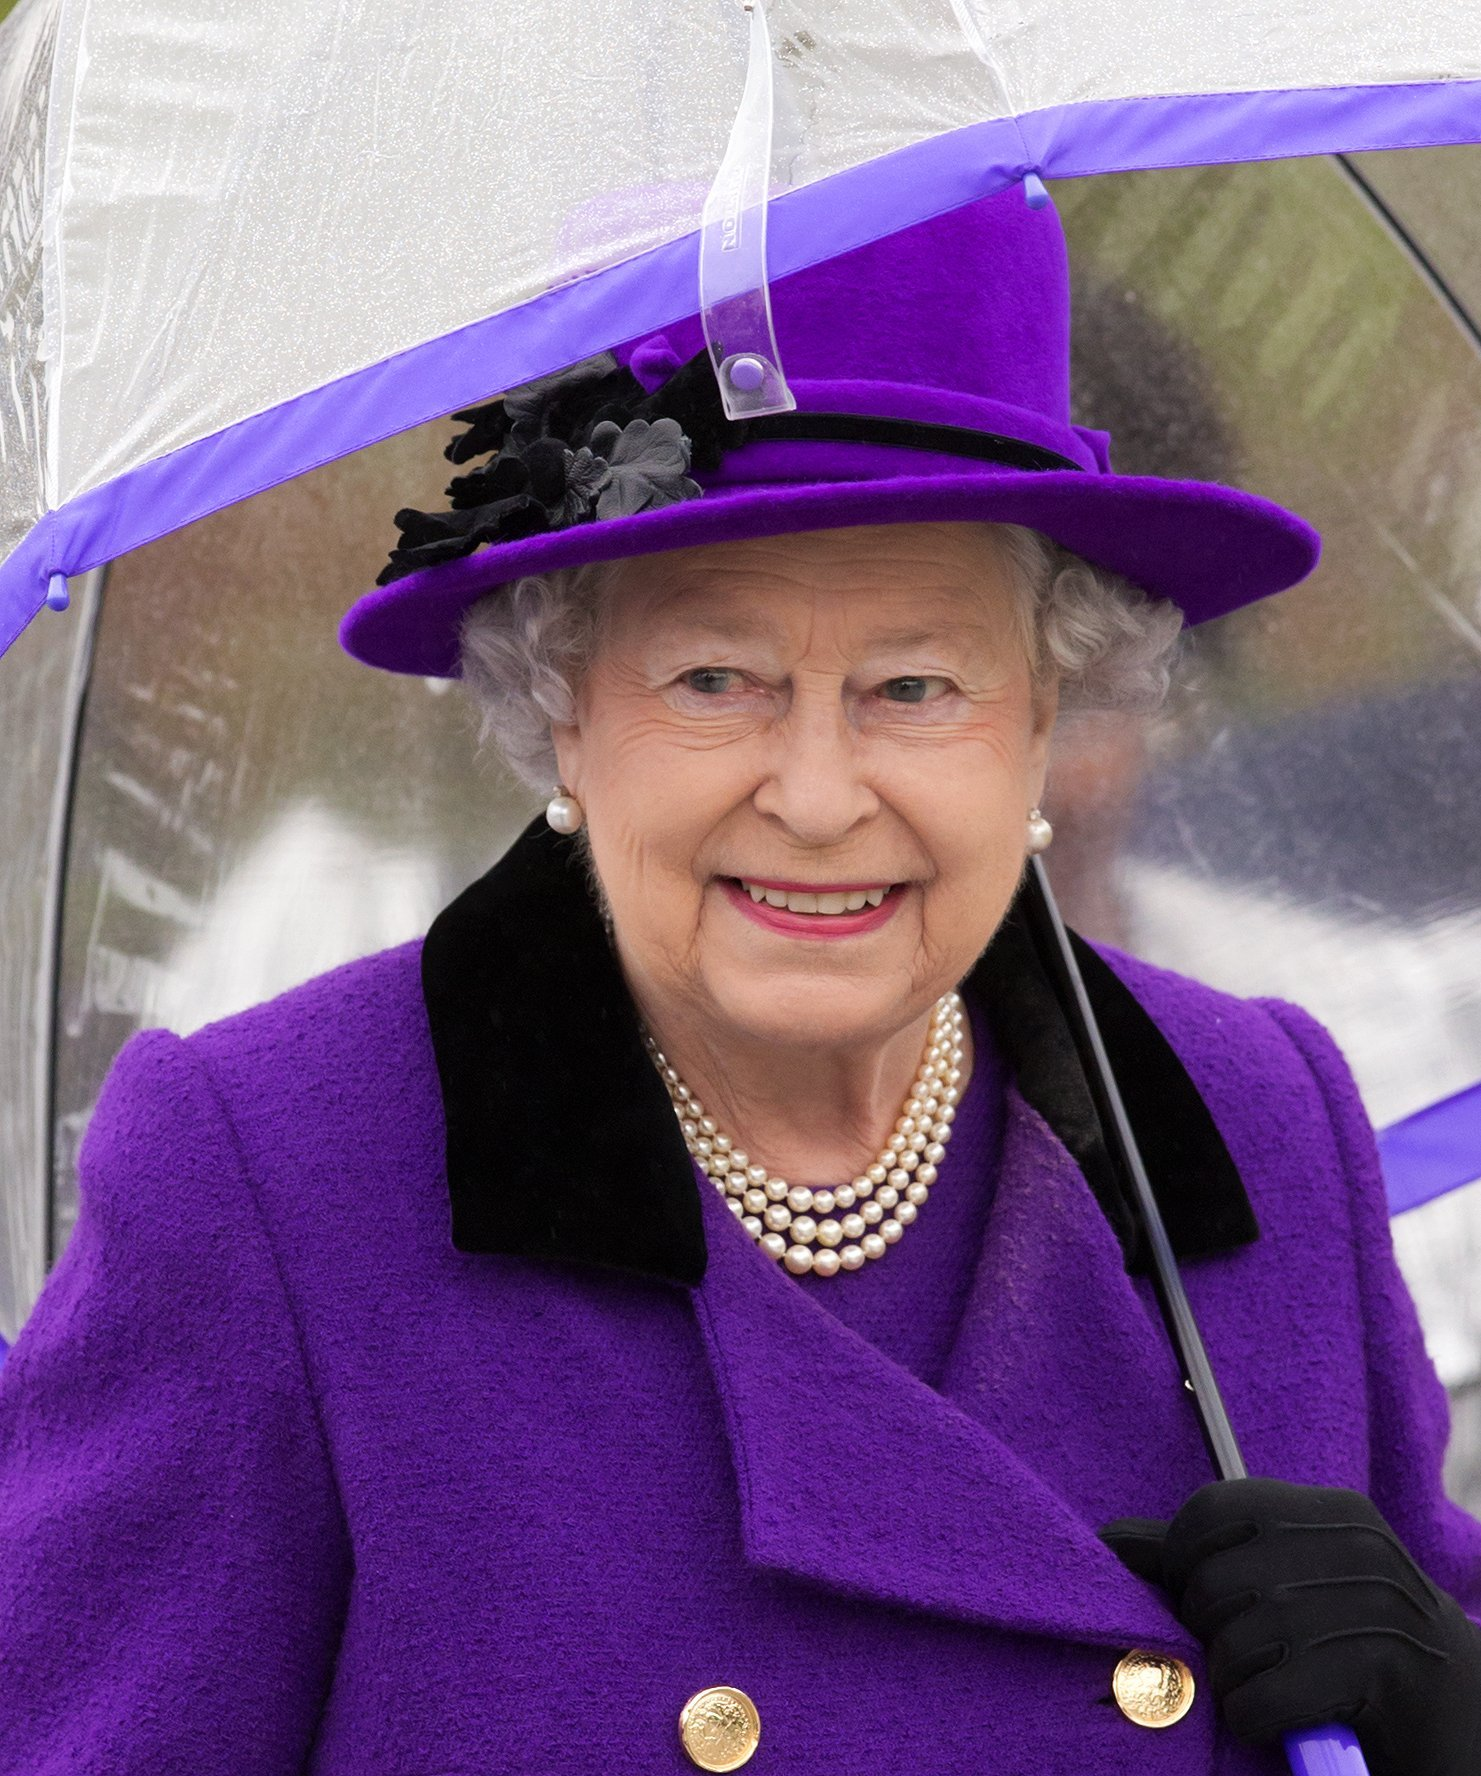 Queen Elizabeth II shelters under an umbrella as attends the opening of the newly developed Jubilee Gardens on October 25, 2012, in London, England. | Source: Getty Images.